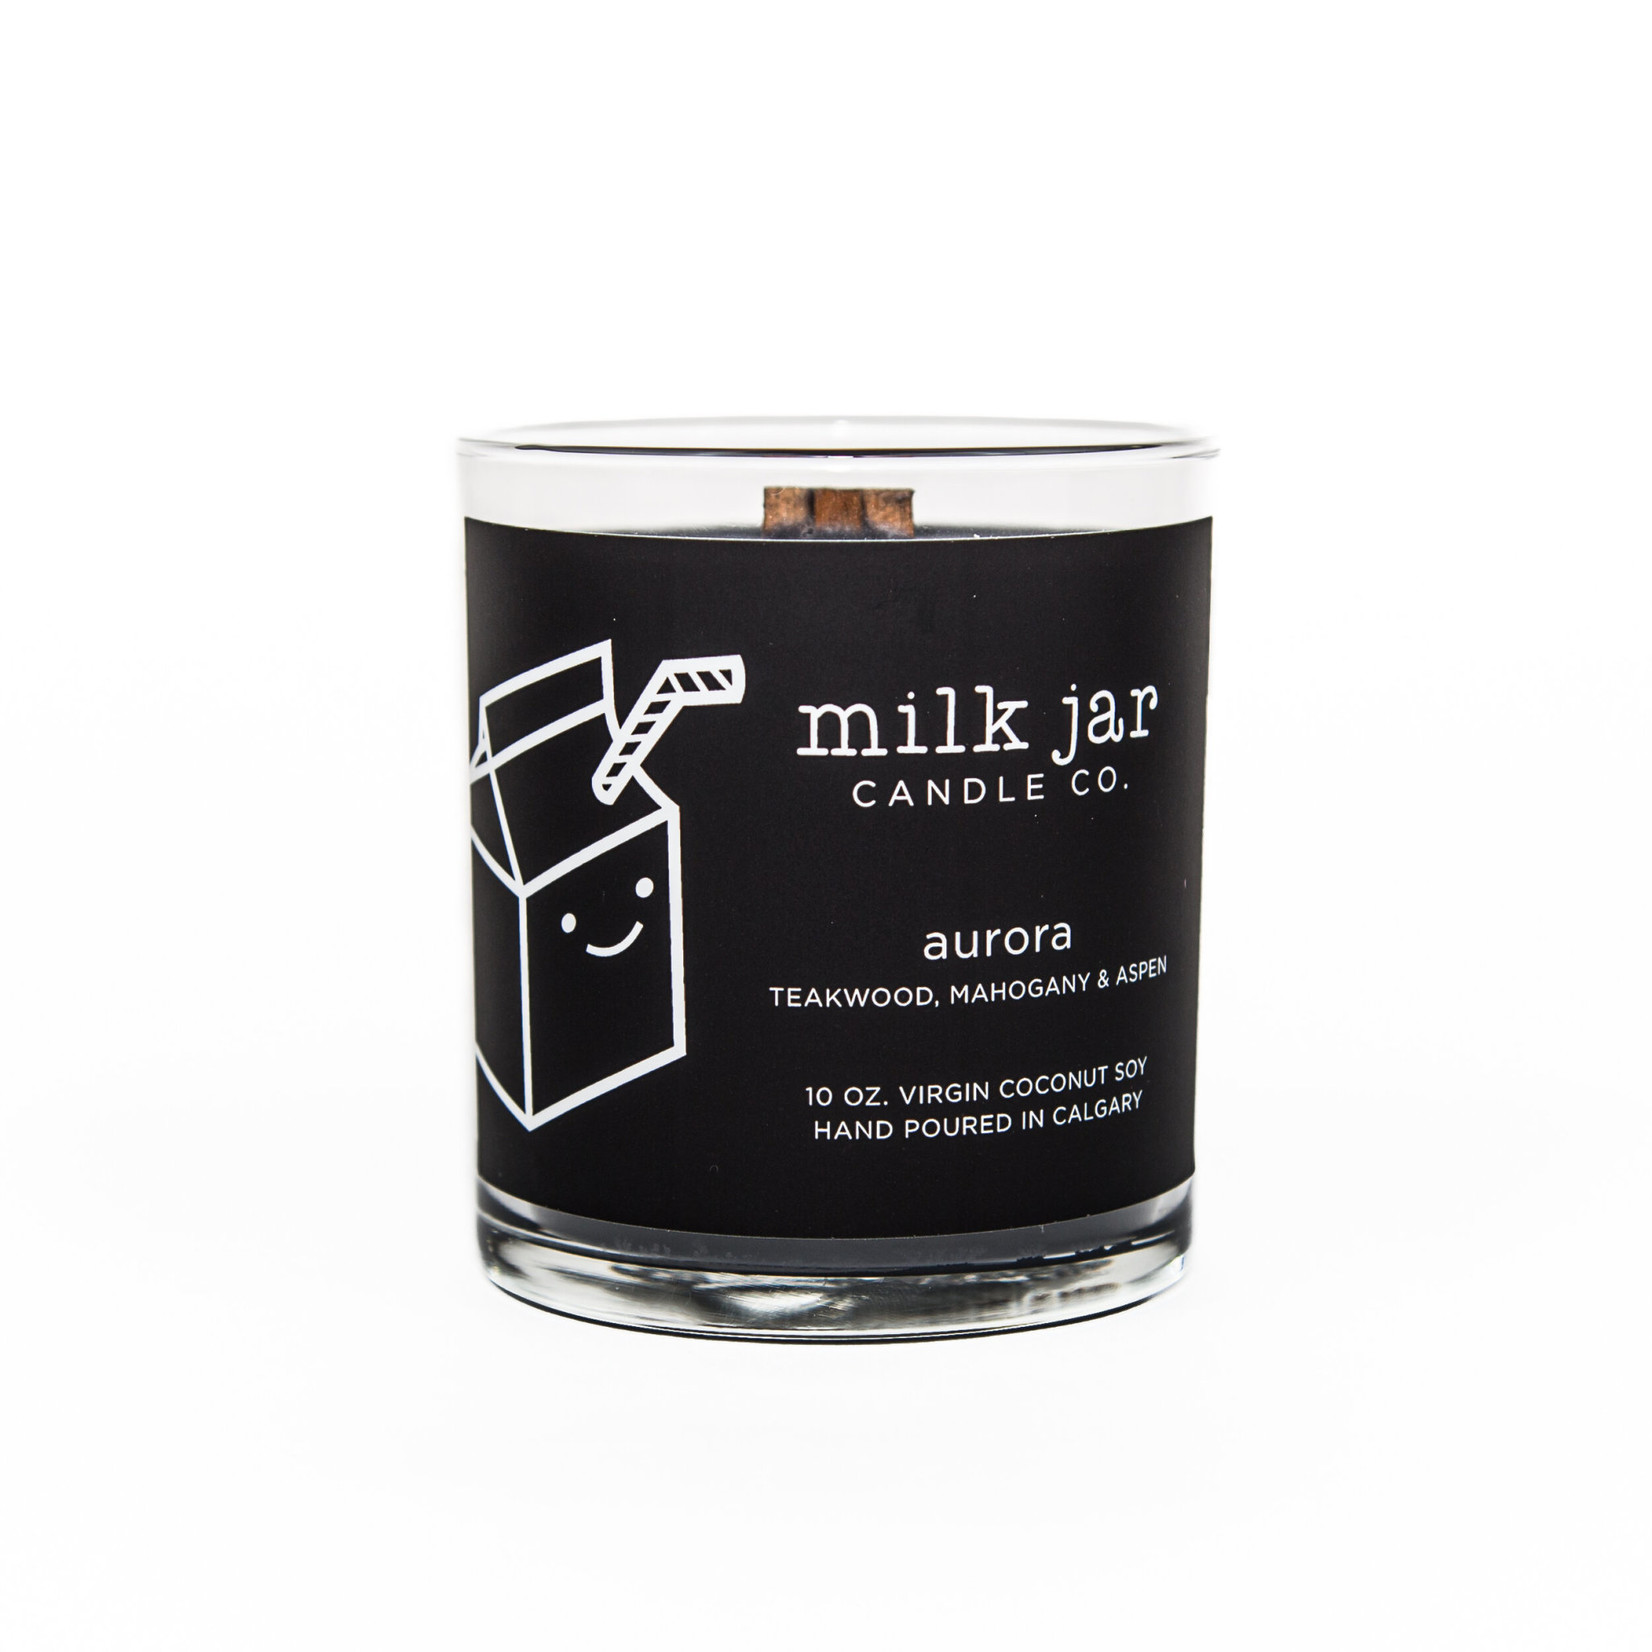 MILK JAR CANDLE CO. AURORA CANDLE